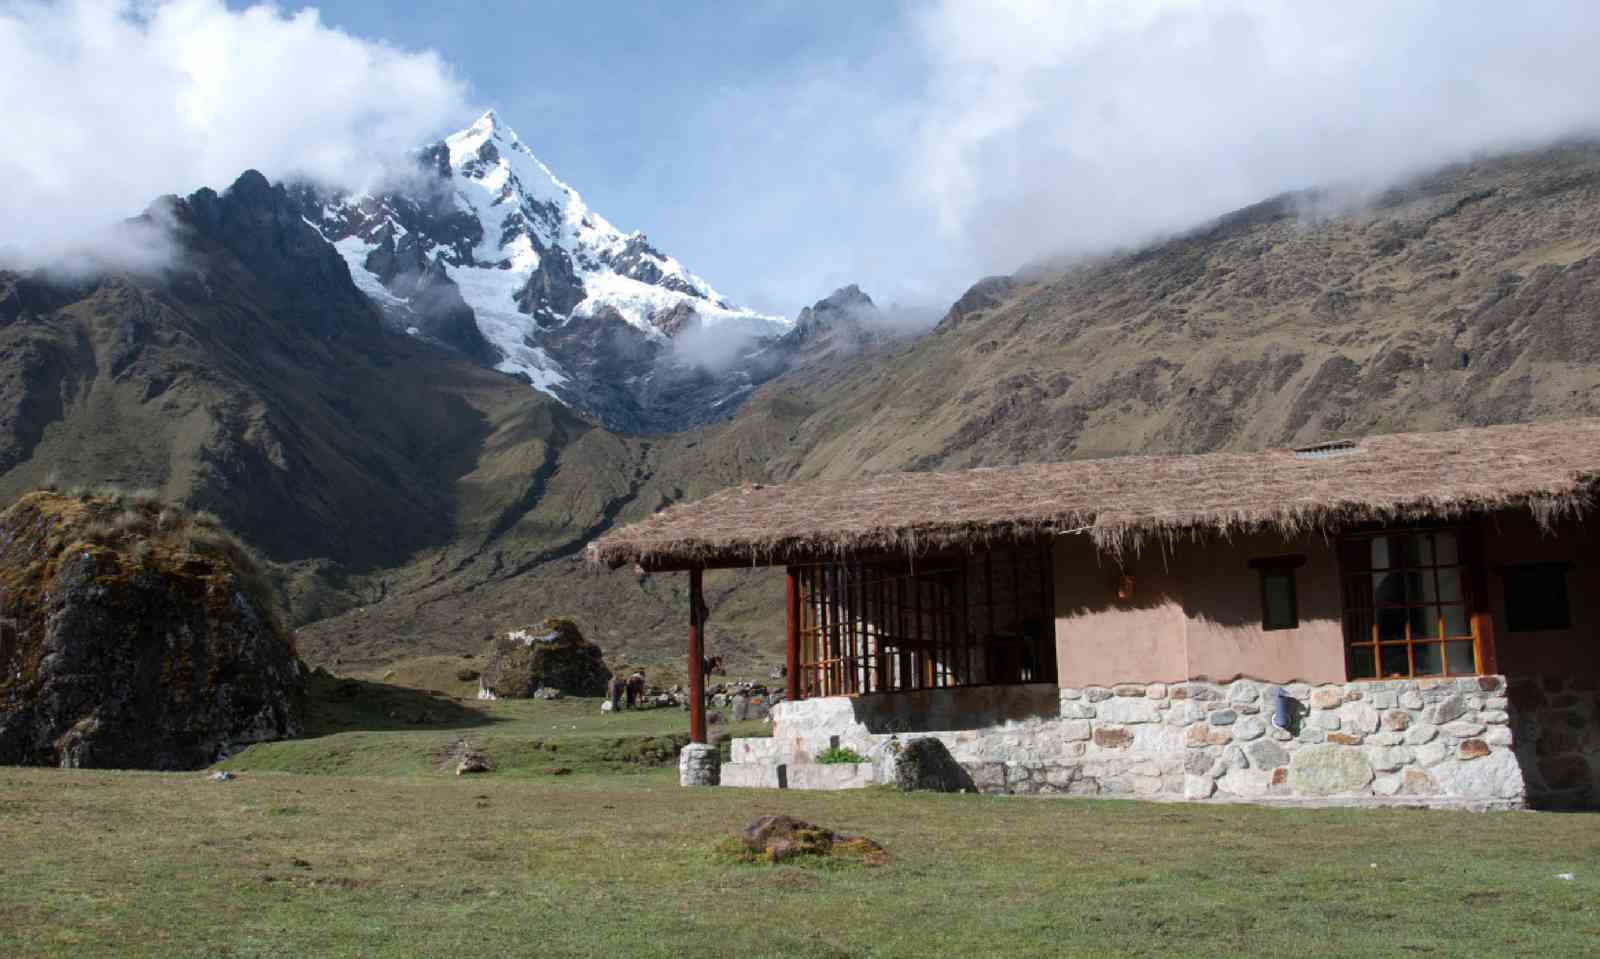 Mountain lodge in Peru (Simon Chubb)